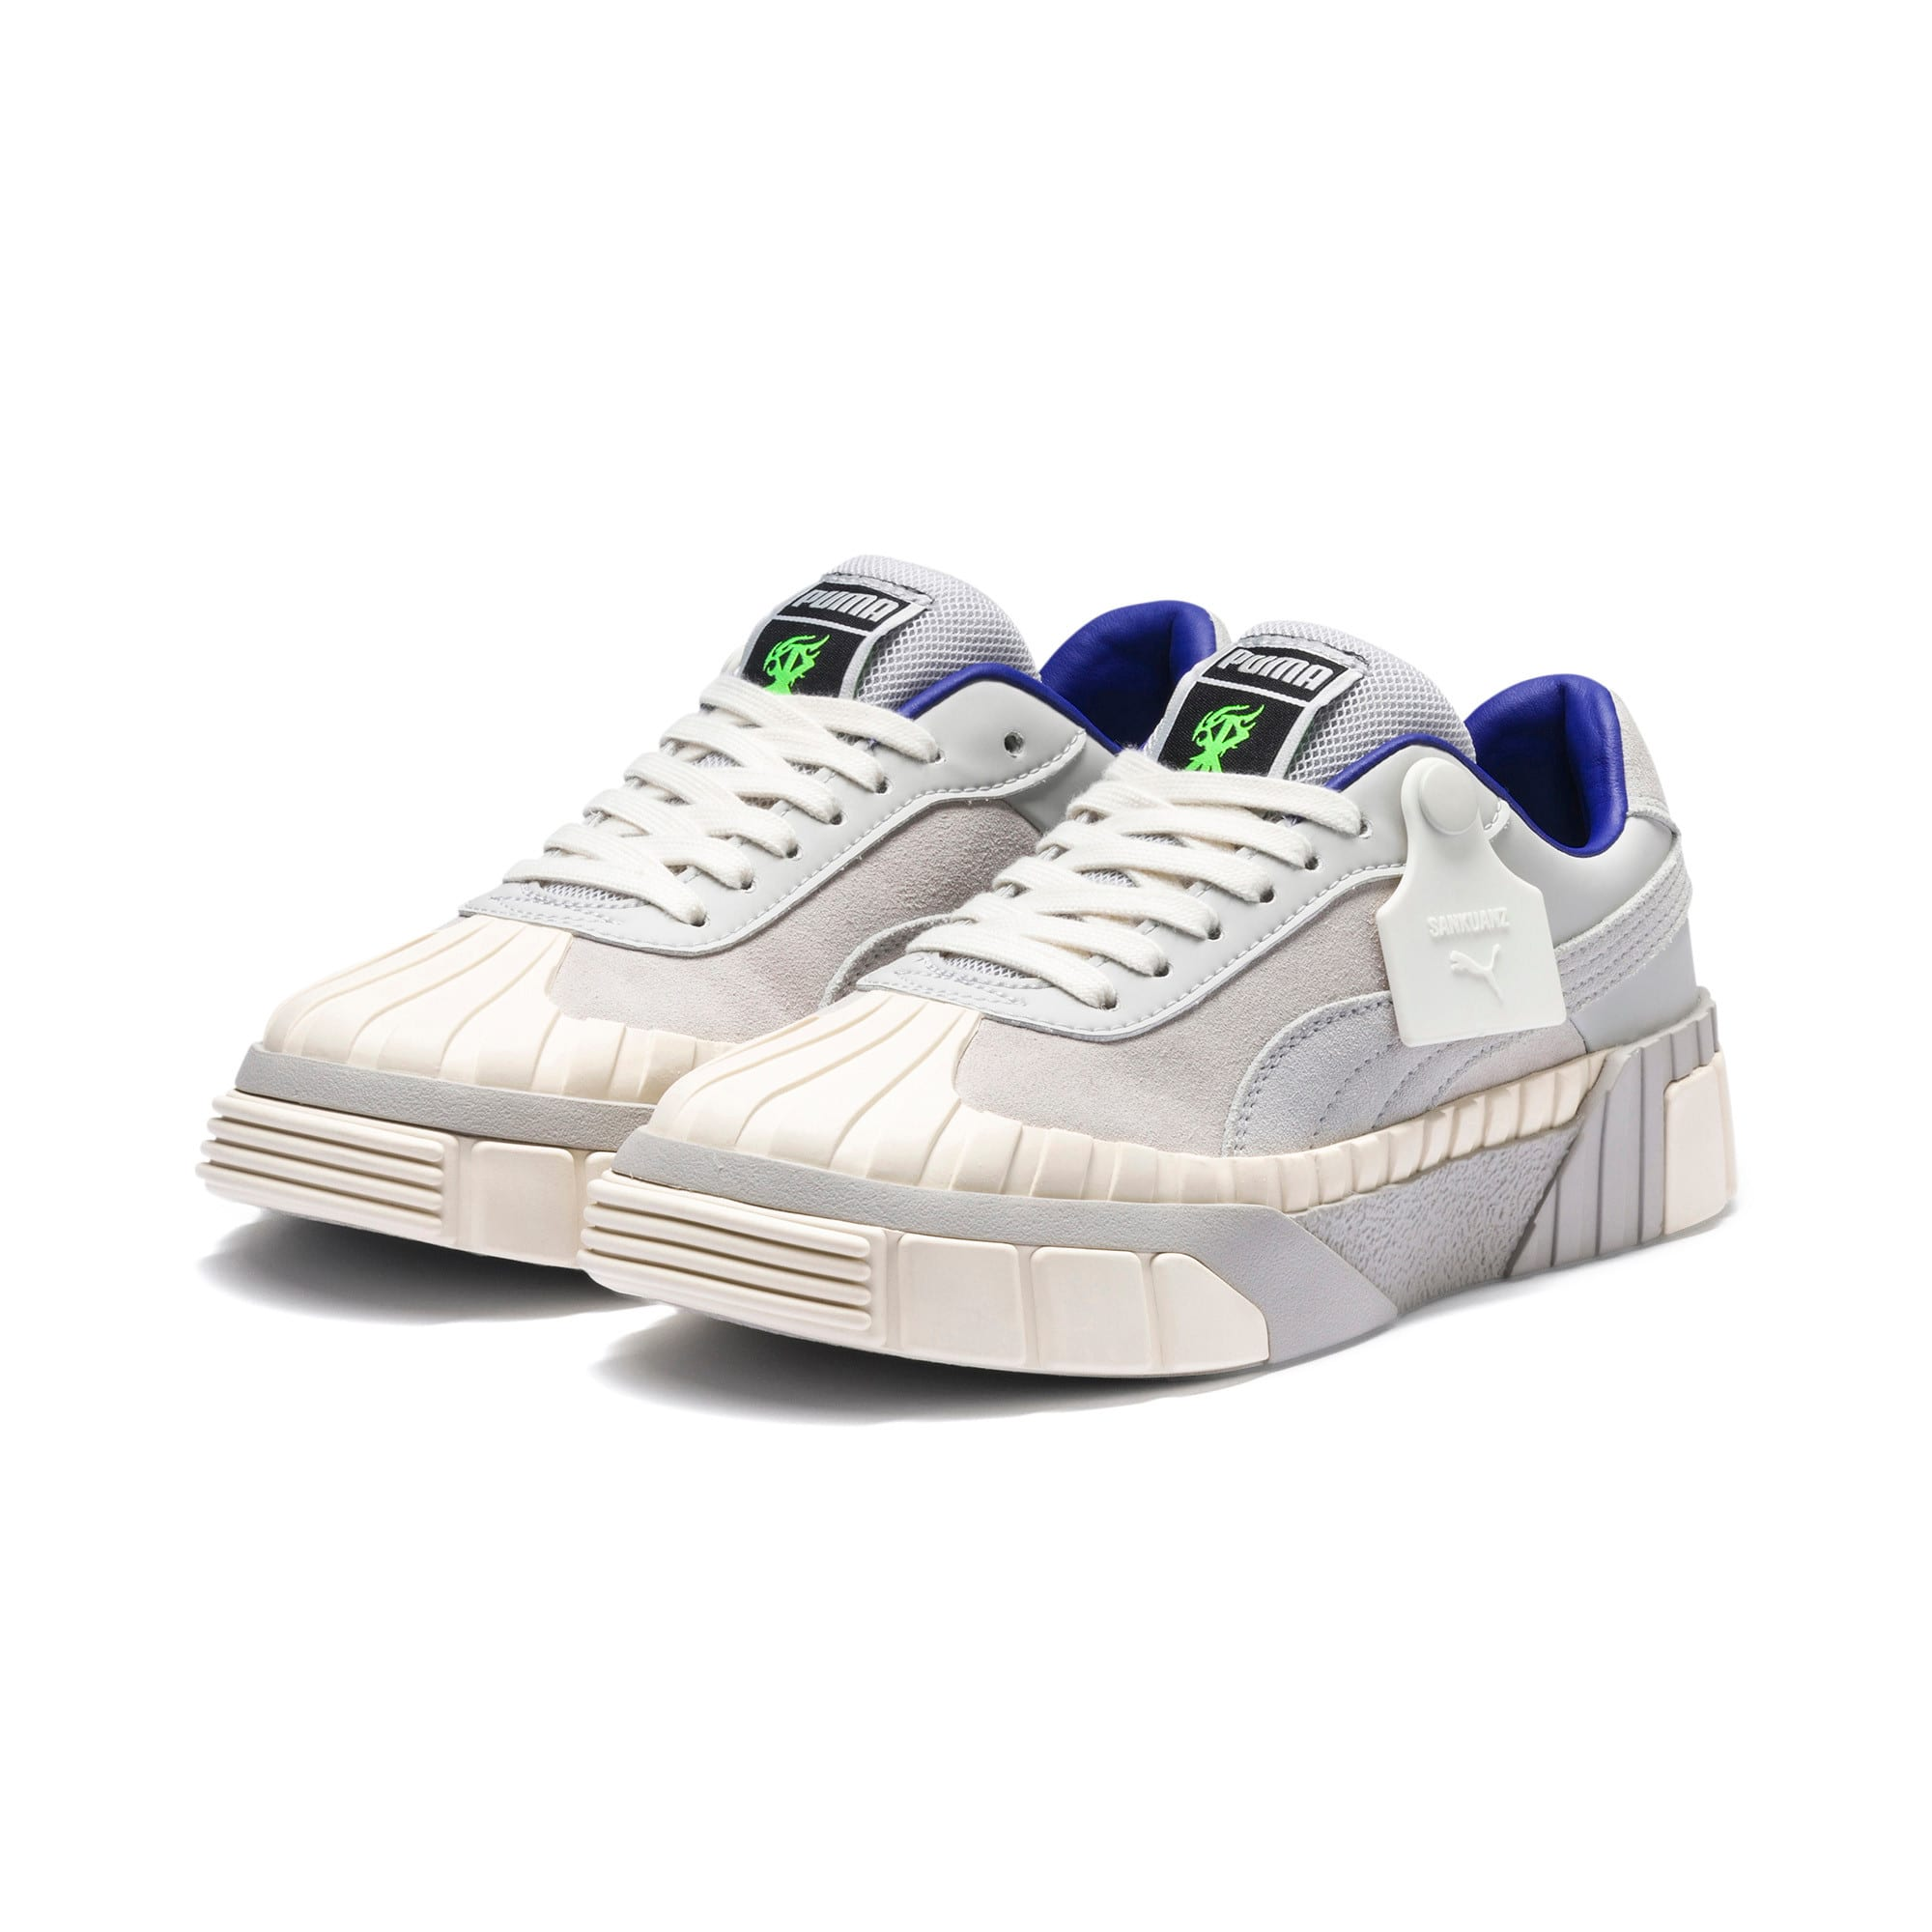 Thumbnail 5 of PUMA x SANKUANZ CALI WOMEN'S, Gray Violet-Whisper White, medium-JPN